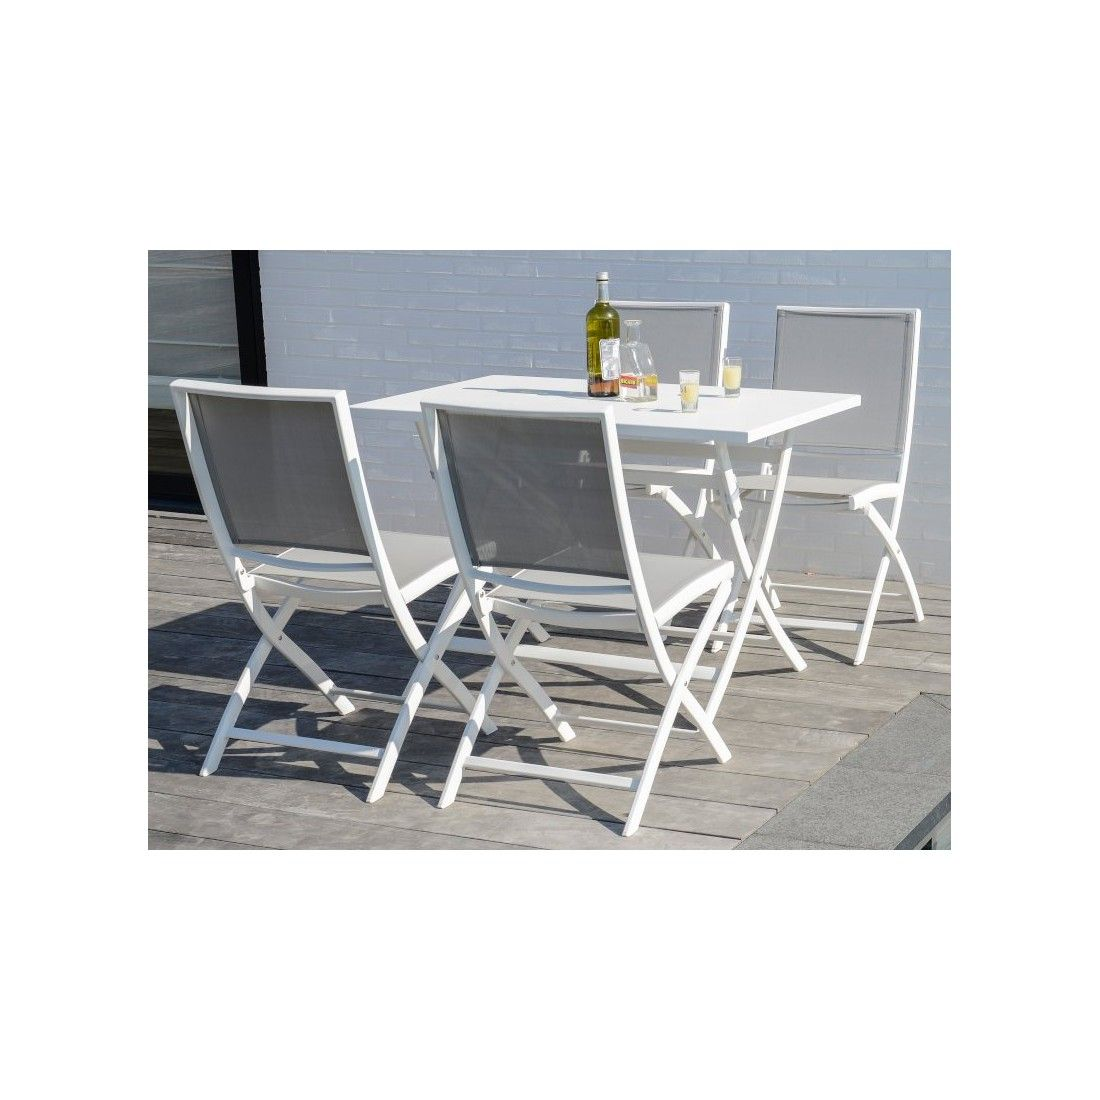 Table pliante en alu blanc ou charcoal